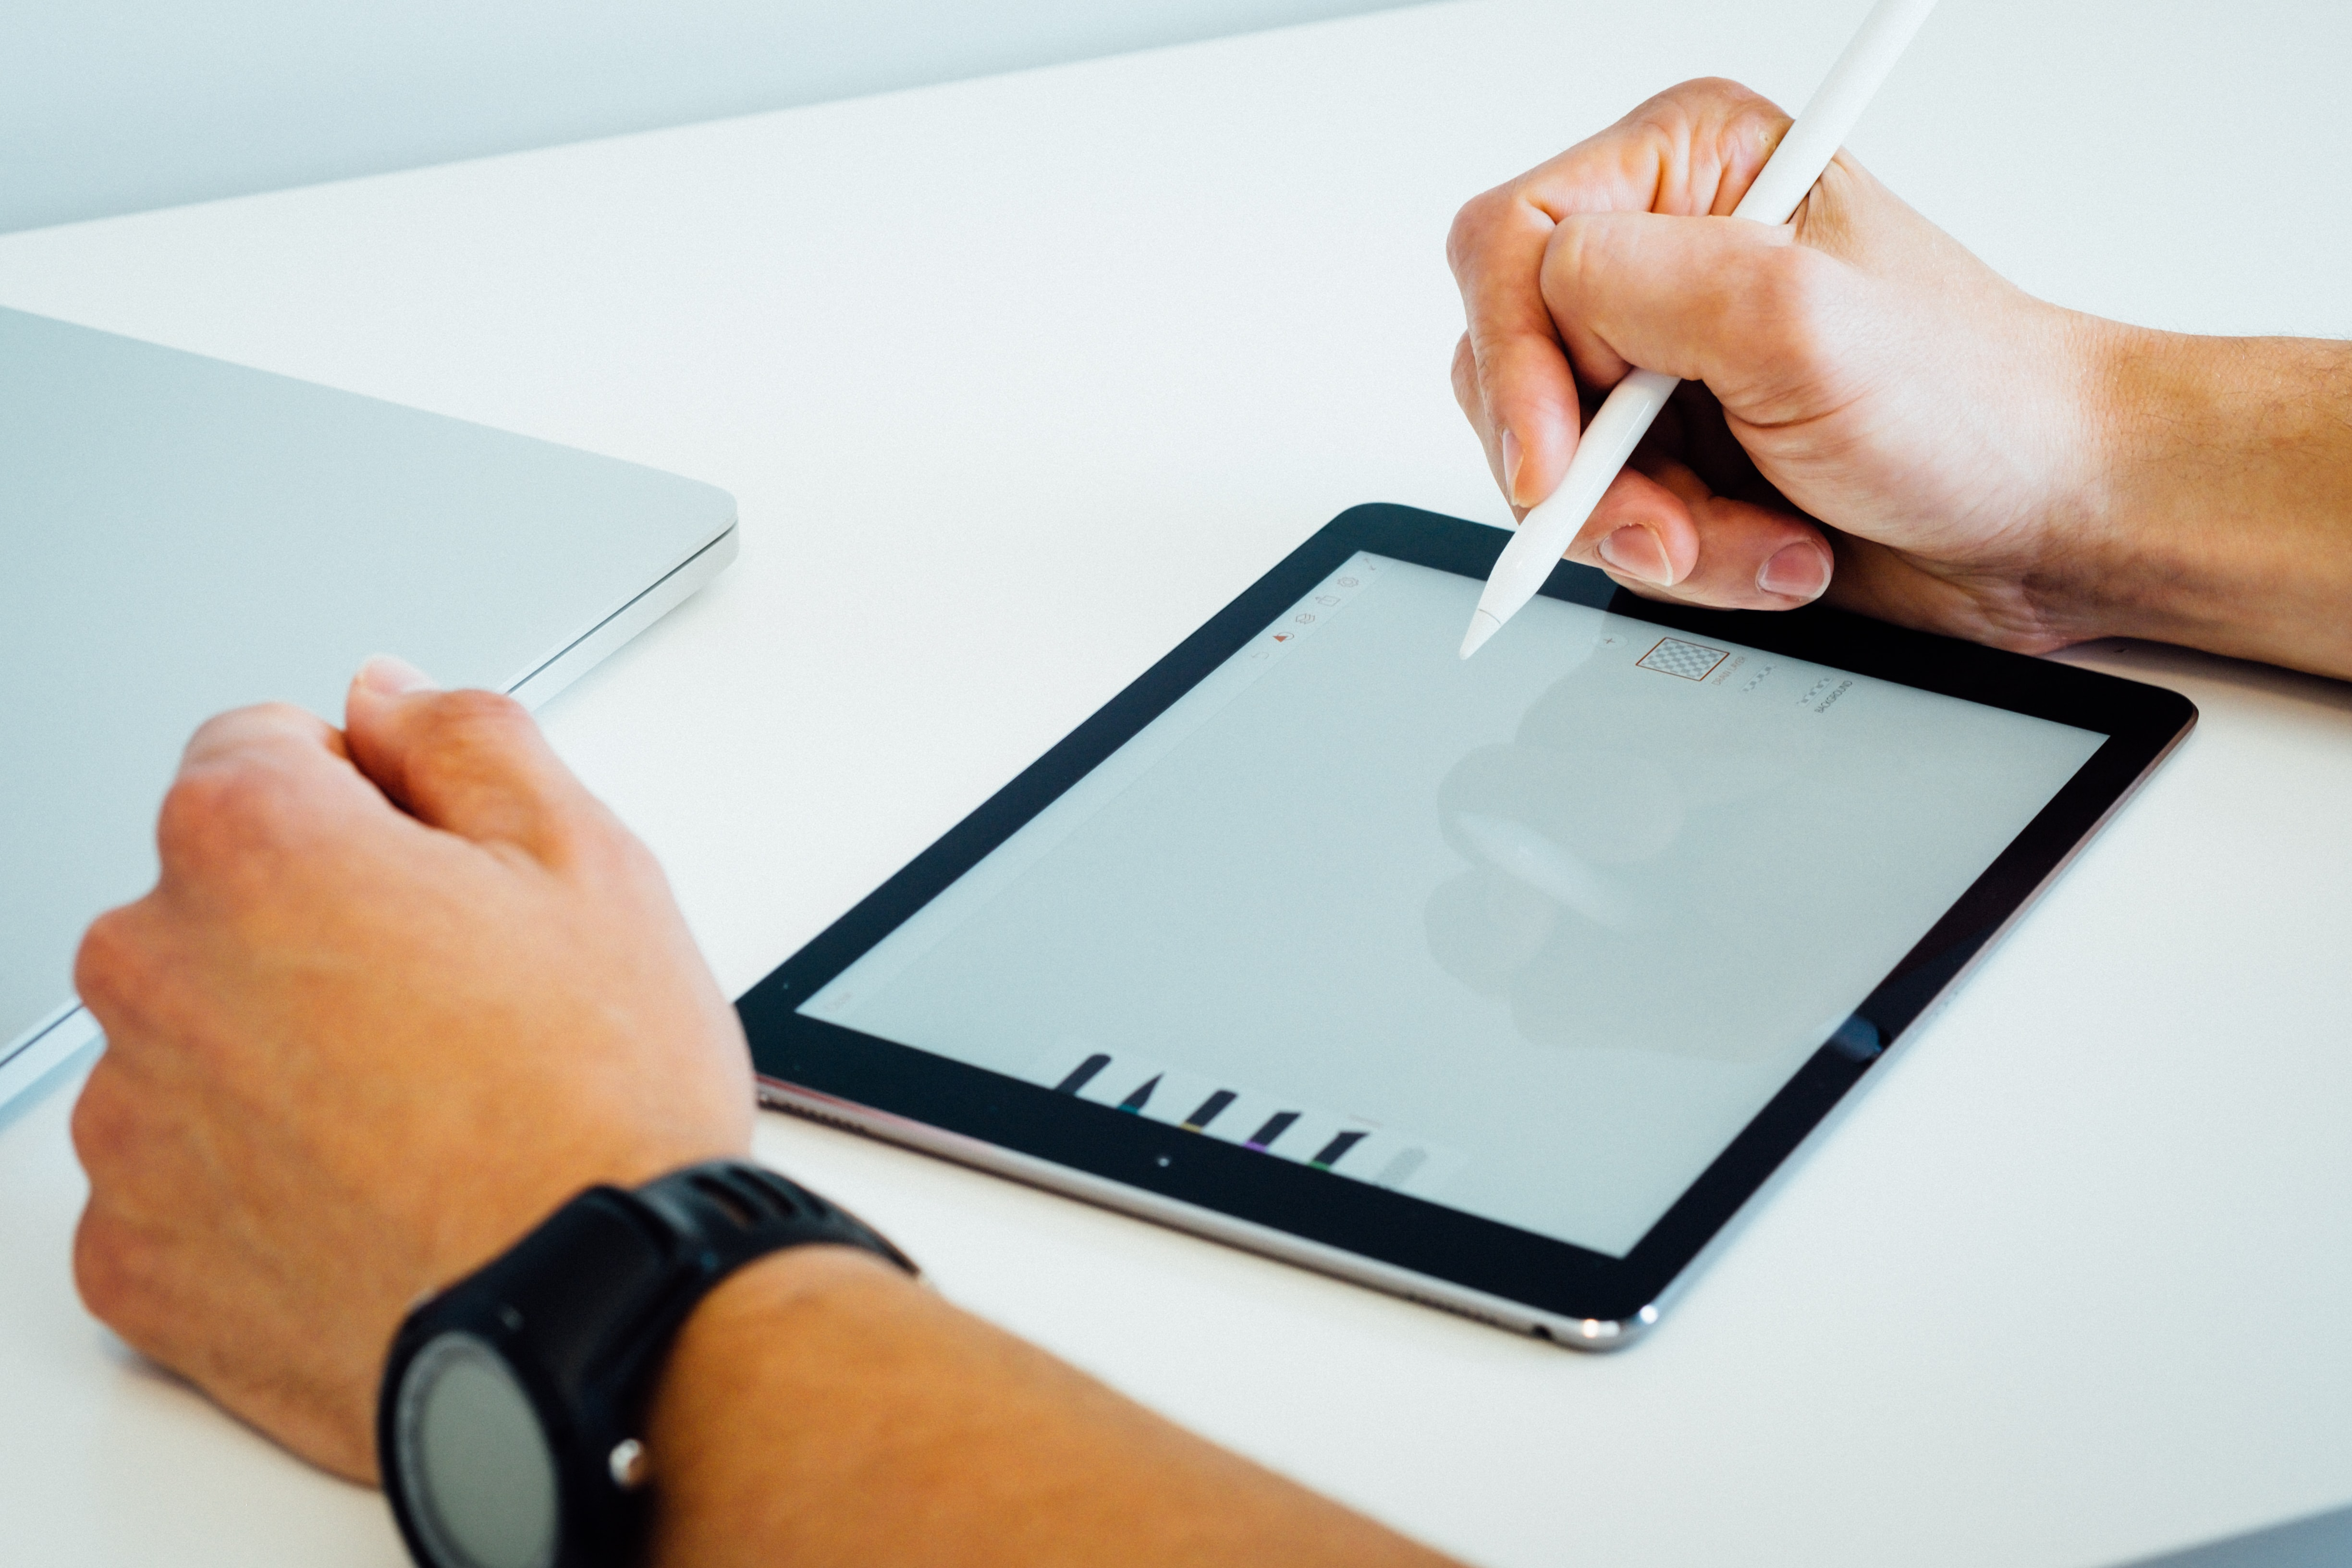 A man drawing on an iPad with a stylus